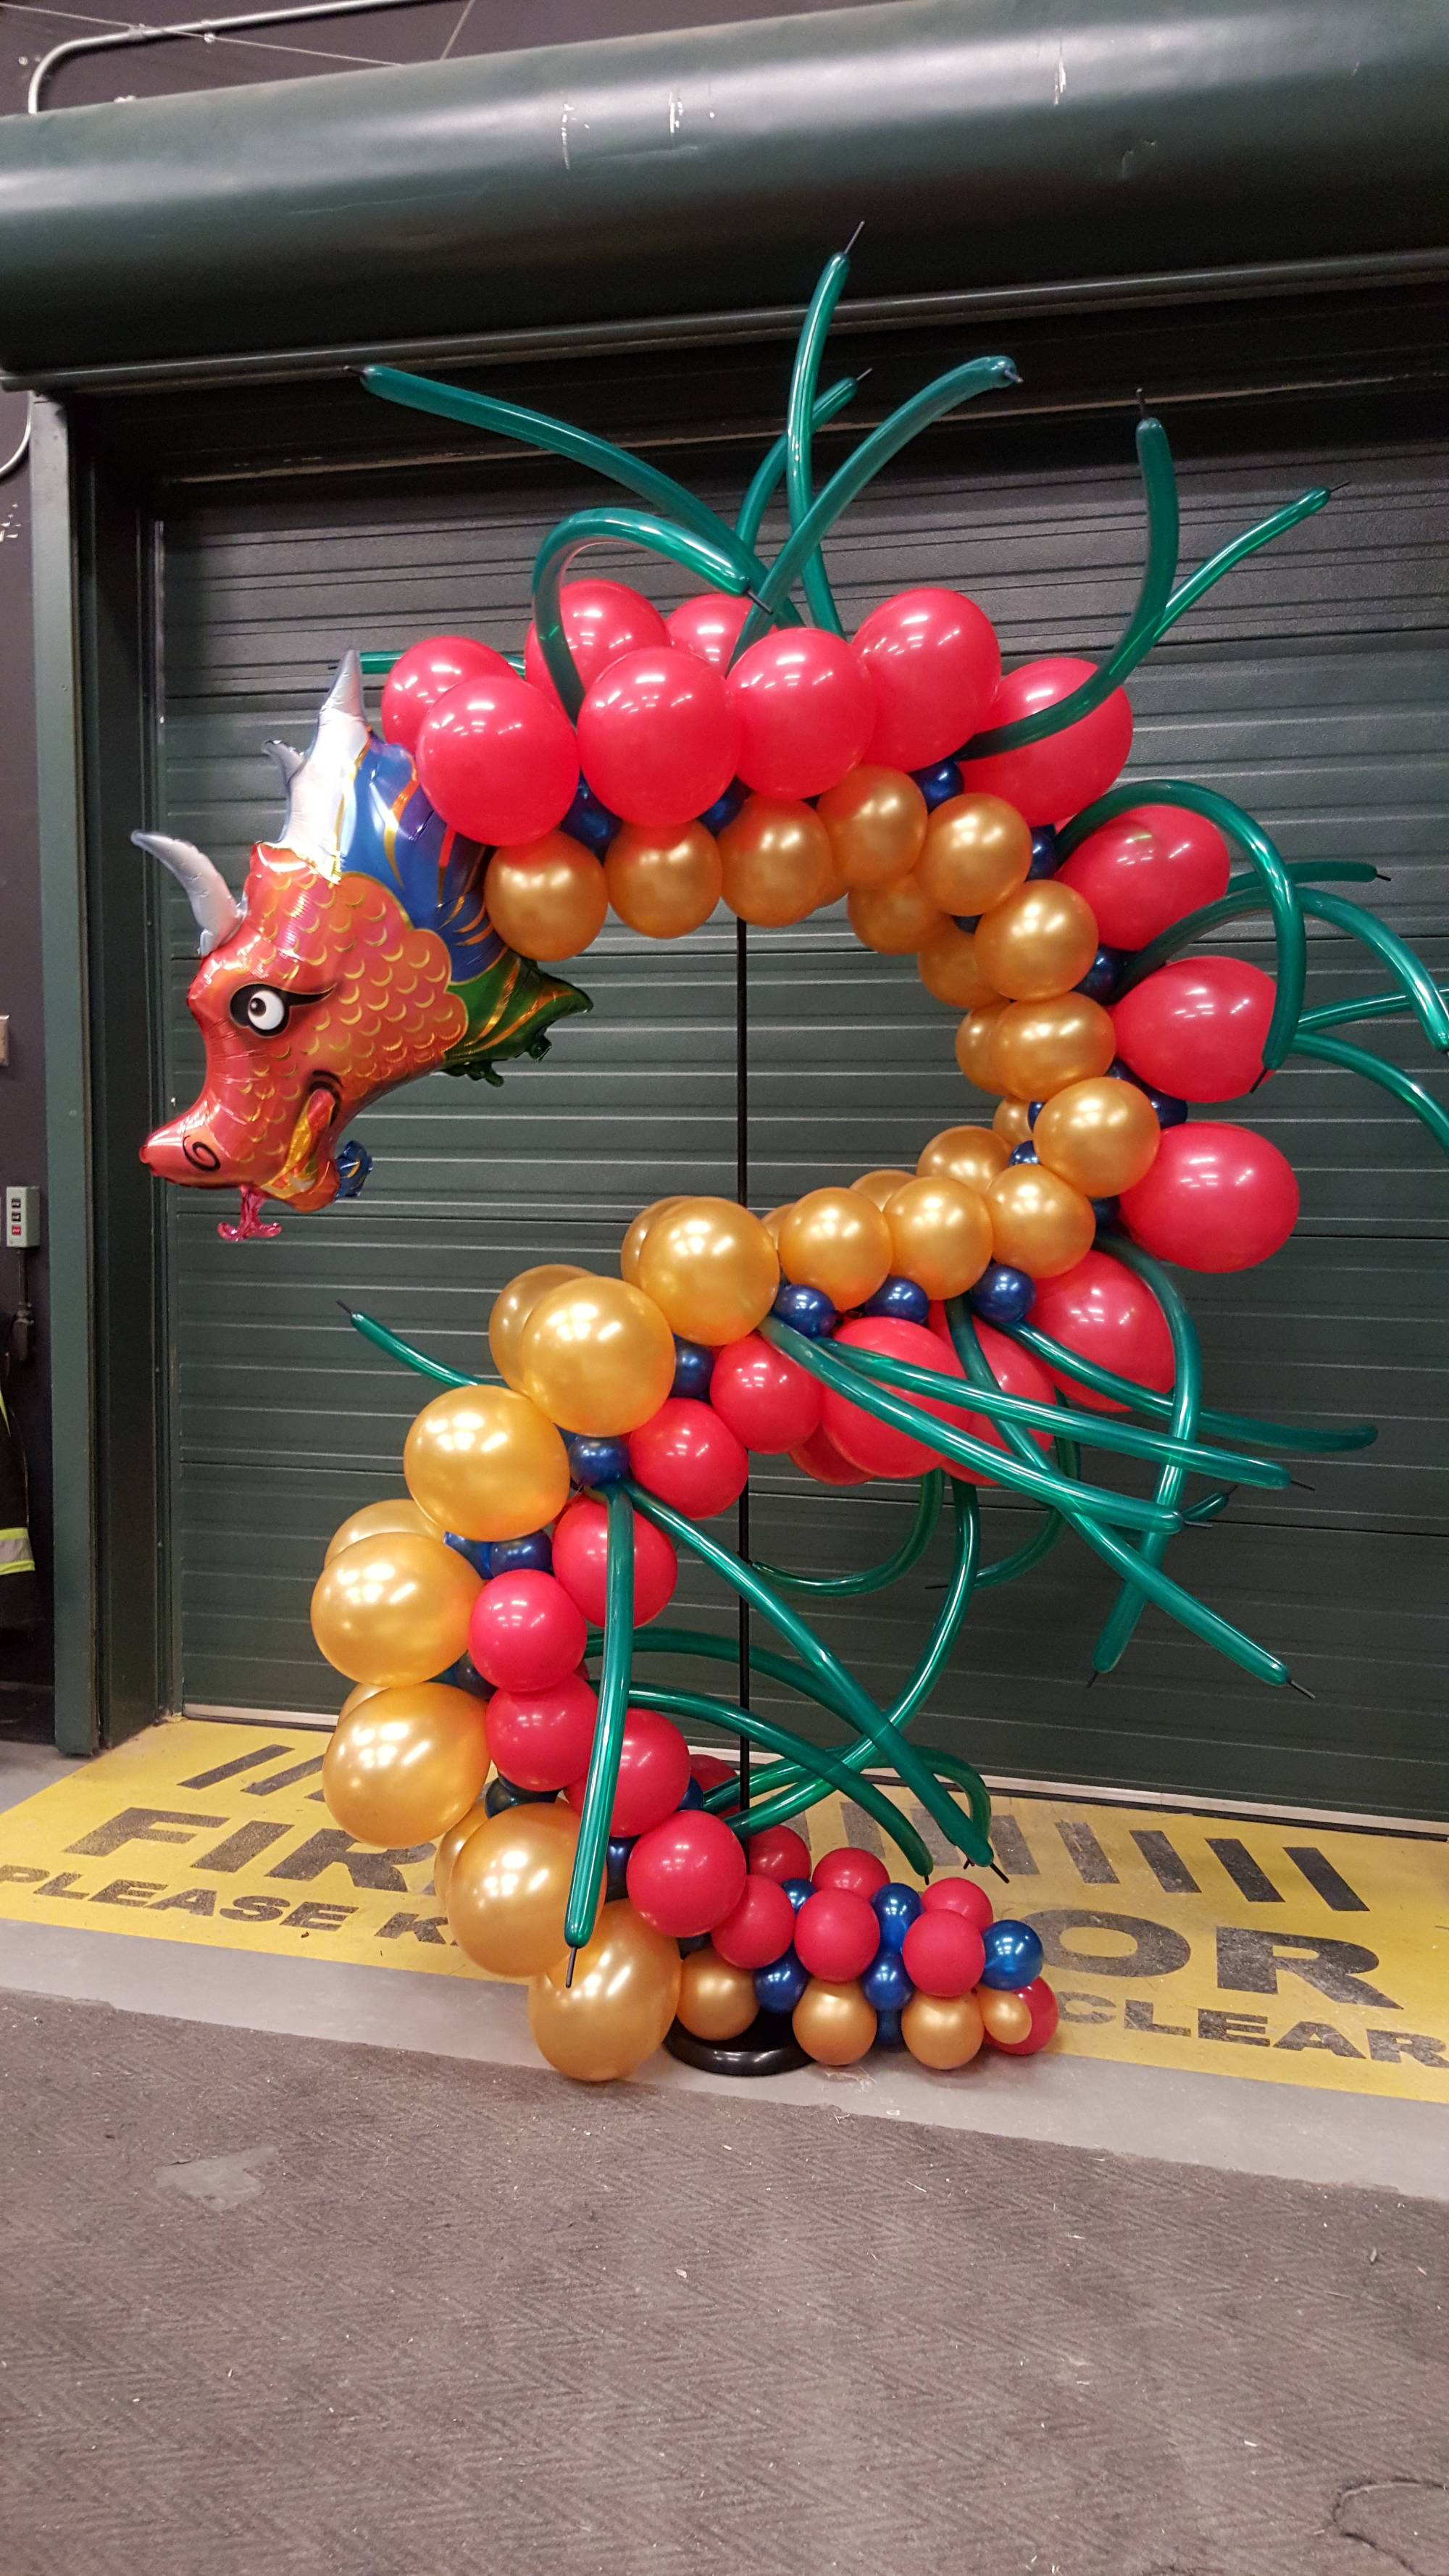 Giant Balloon Dragon by Balloon Empire